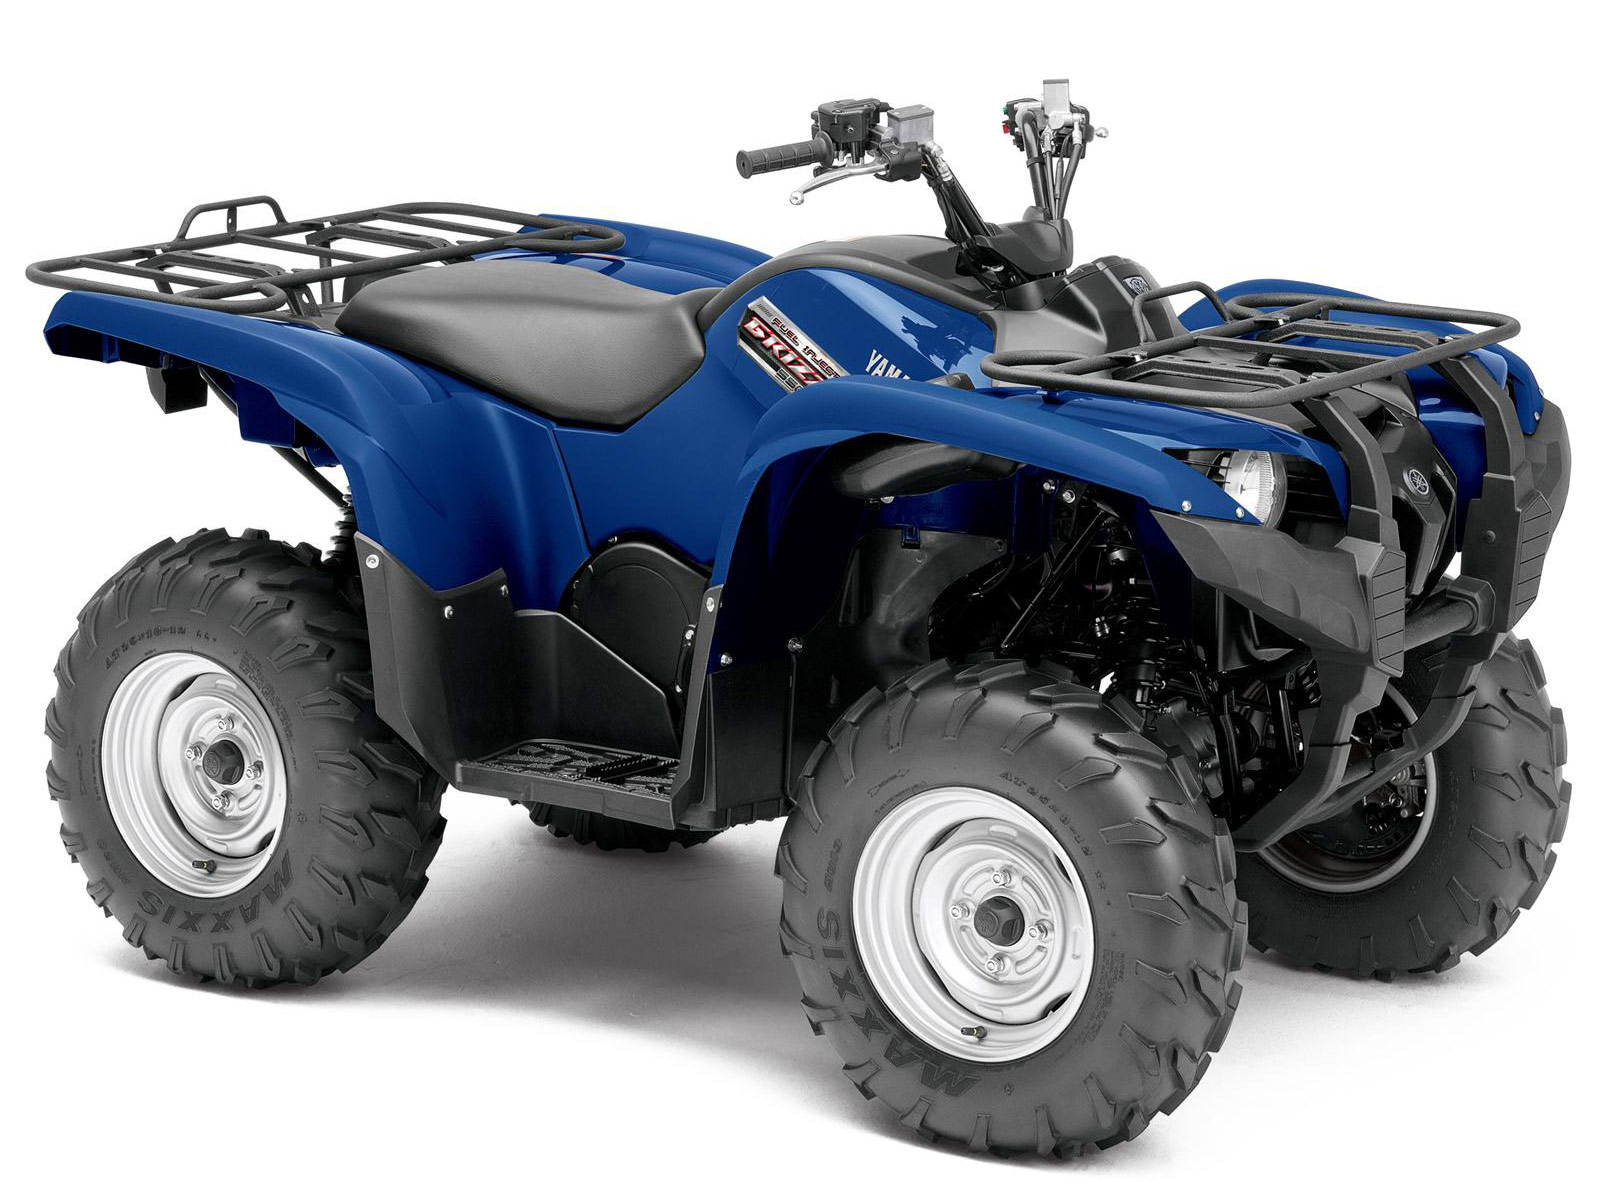 2013 grizzly 550 fi auto 4x4 yamaha atv pictures specs. Black Bedroom Furniture Sets. Home Design Ideas